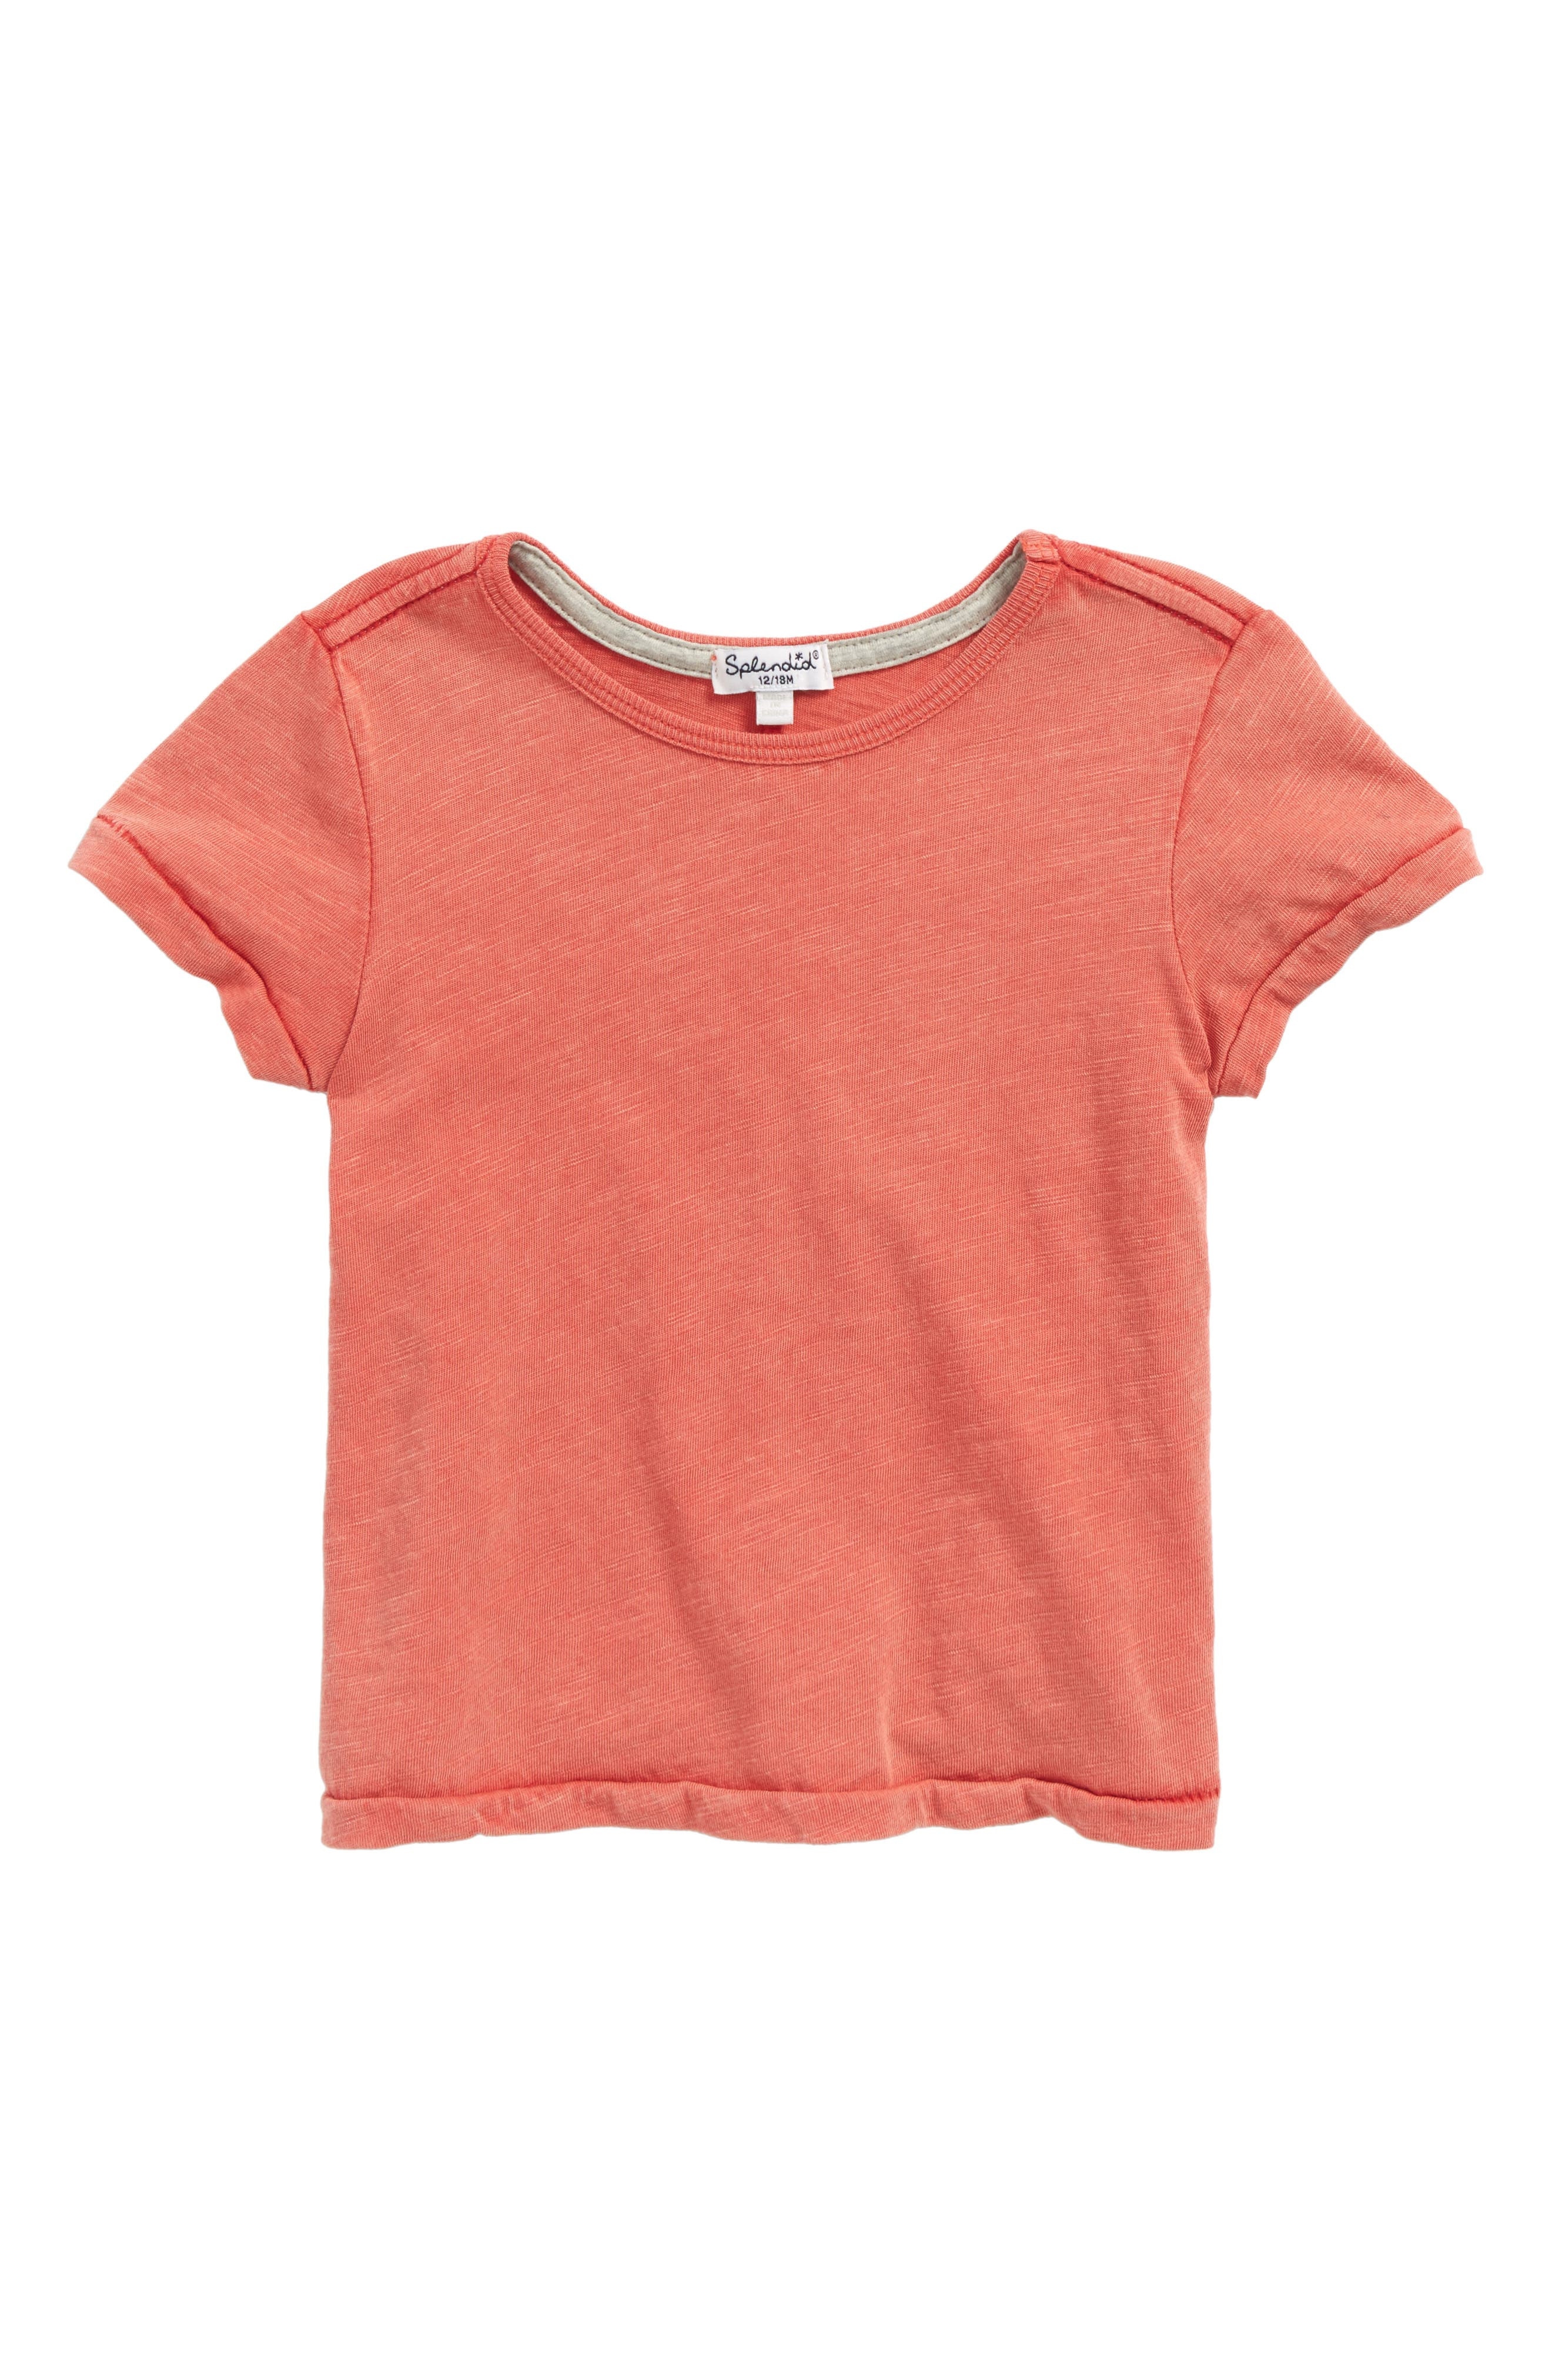 Washed Slub Jersey T-Shirt,                             Main thumbnail 1, color,                             Red Sequoia